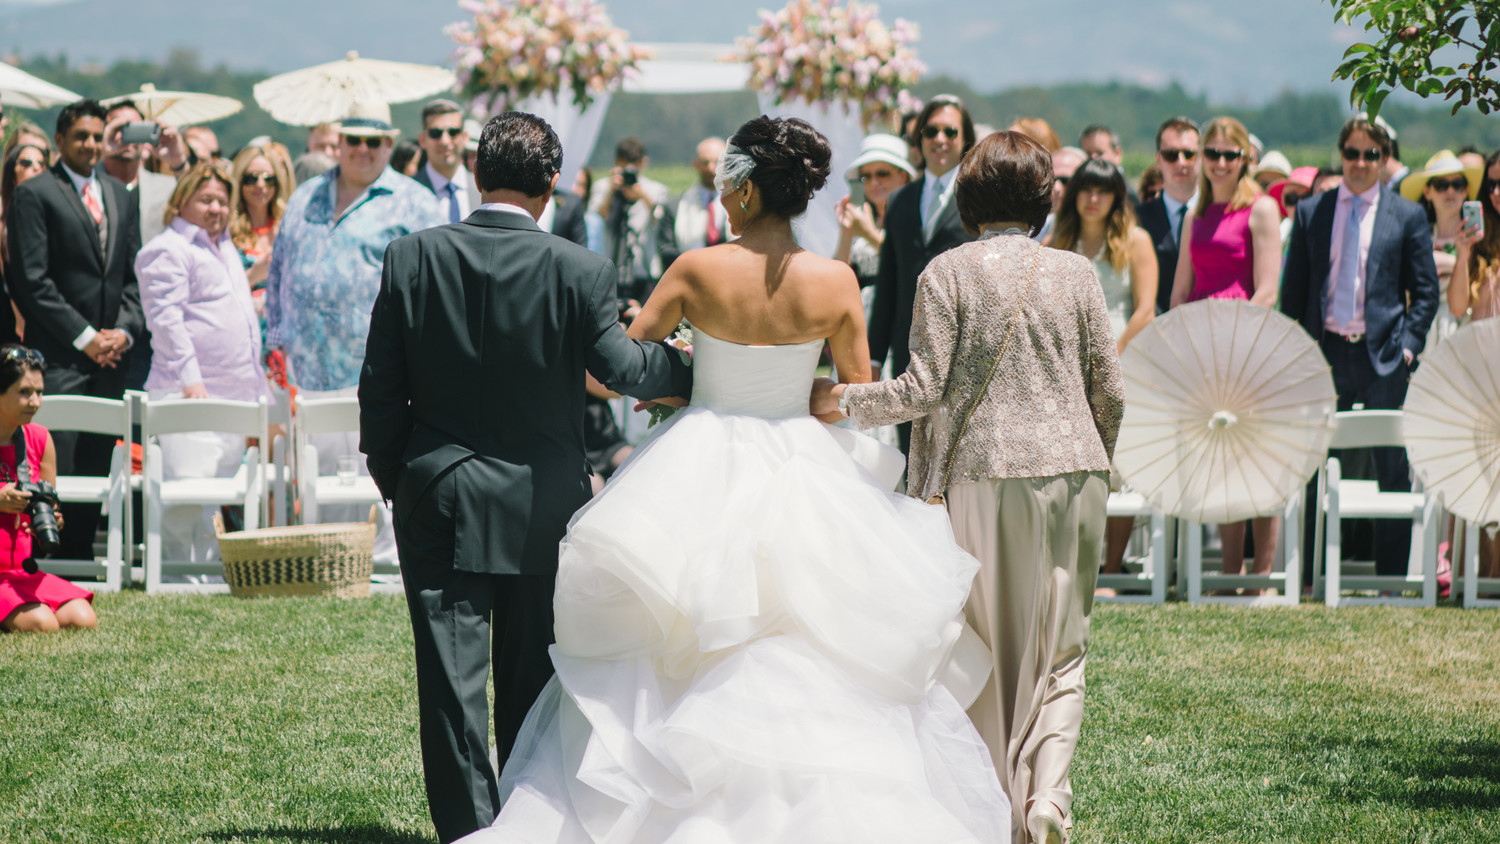 Processional Songs For Wedding Party: Processional Wedding Songs For Making An Entrance